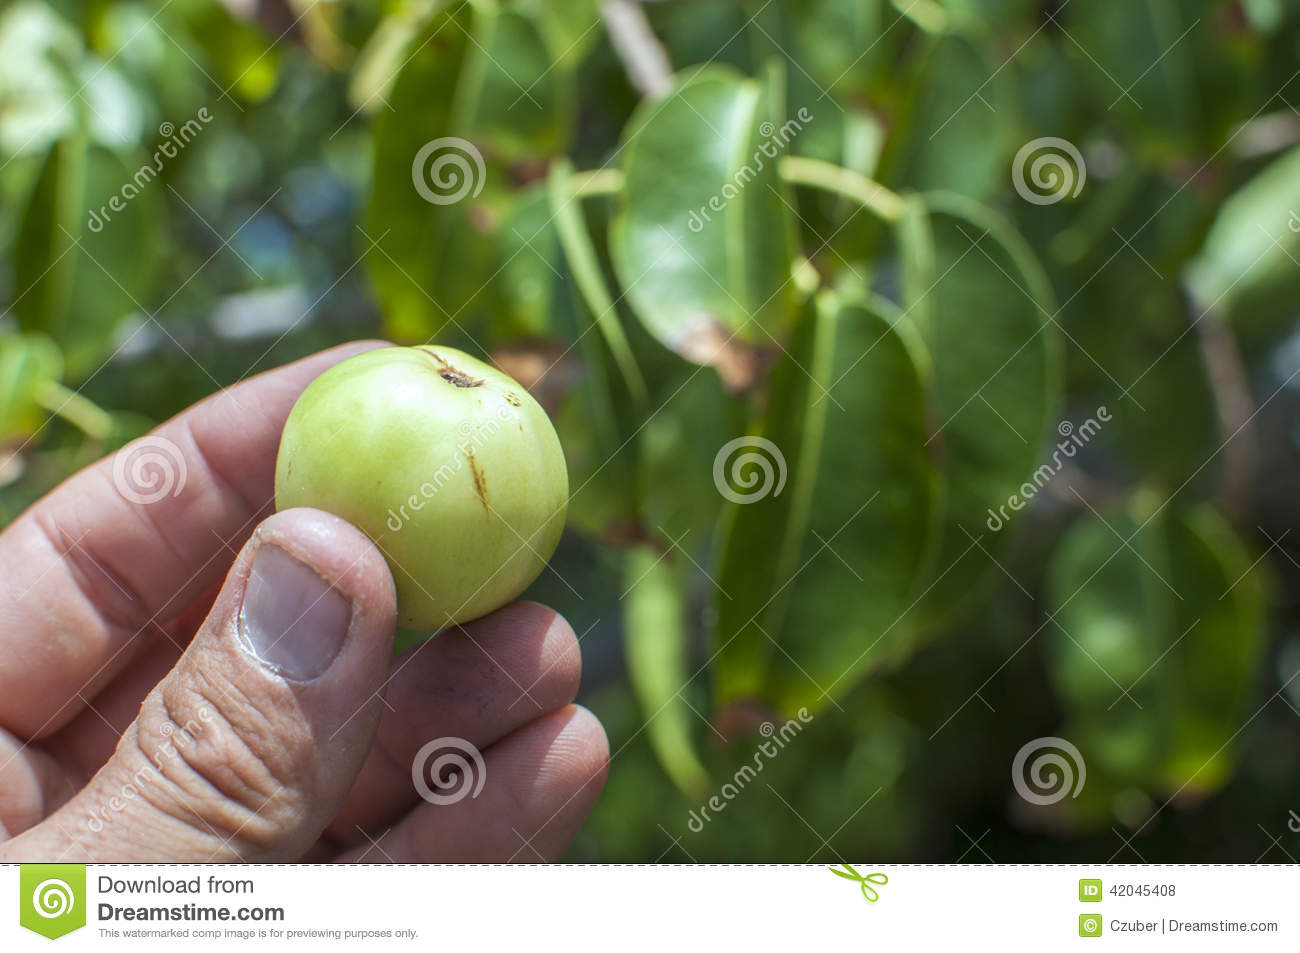 Little apple of death stock photo  Image of little  edible   42045408 Little apple of death